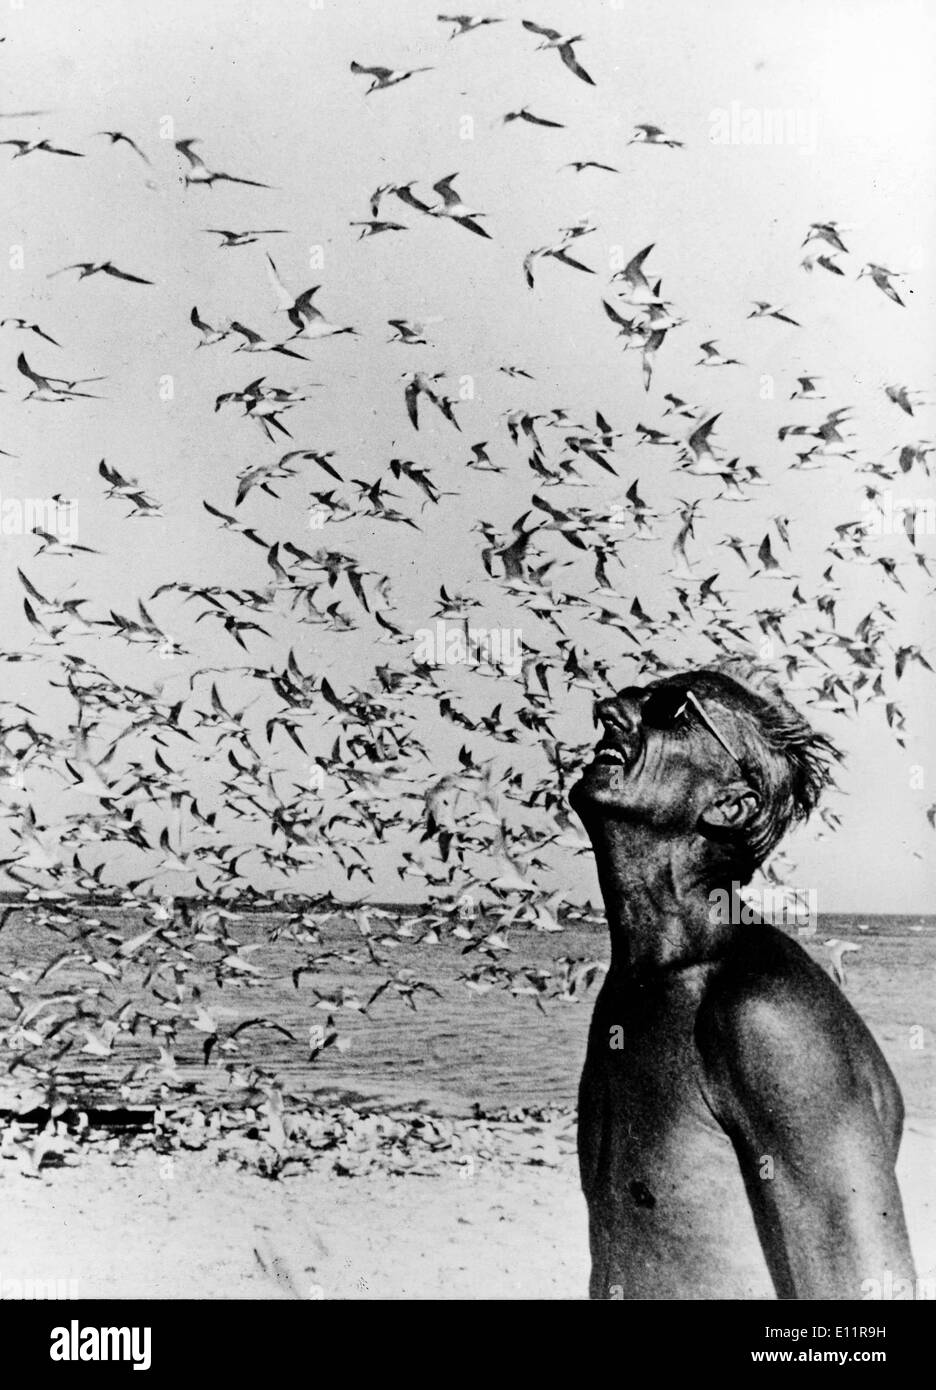 Jan 01, 1980 - unknown - (File Photo, c1970's, location unknown) JACQUE-YVES COUSTEAU was a French naval officer, Stock Photo